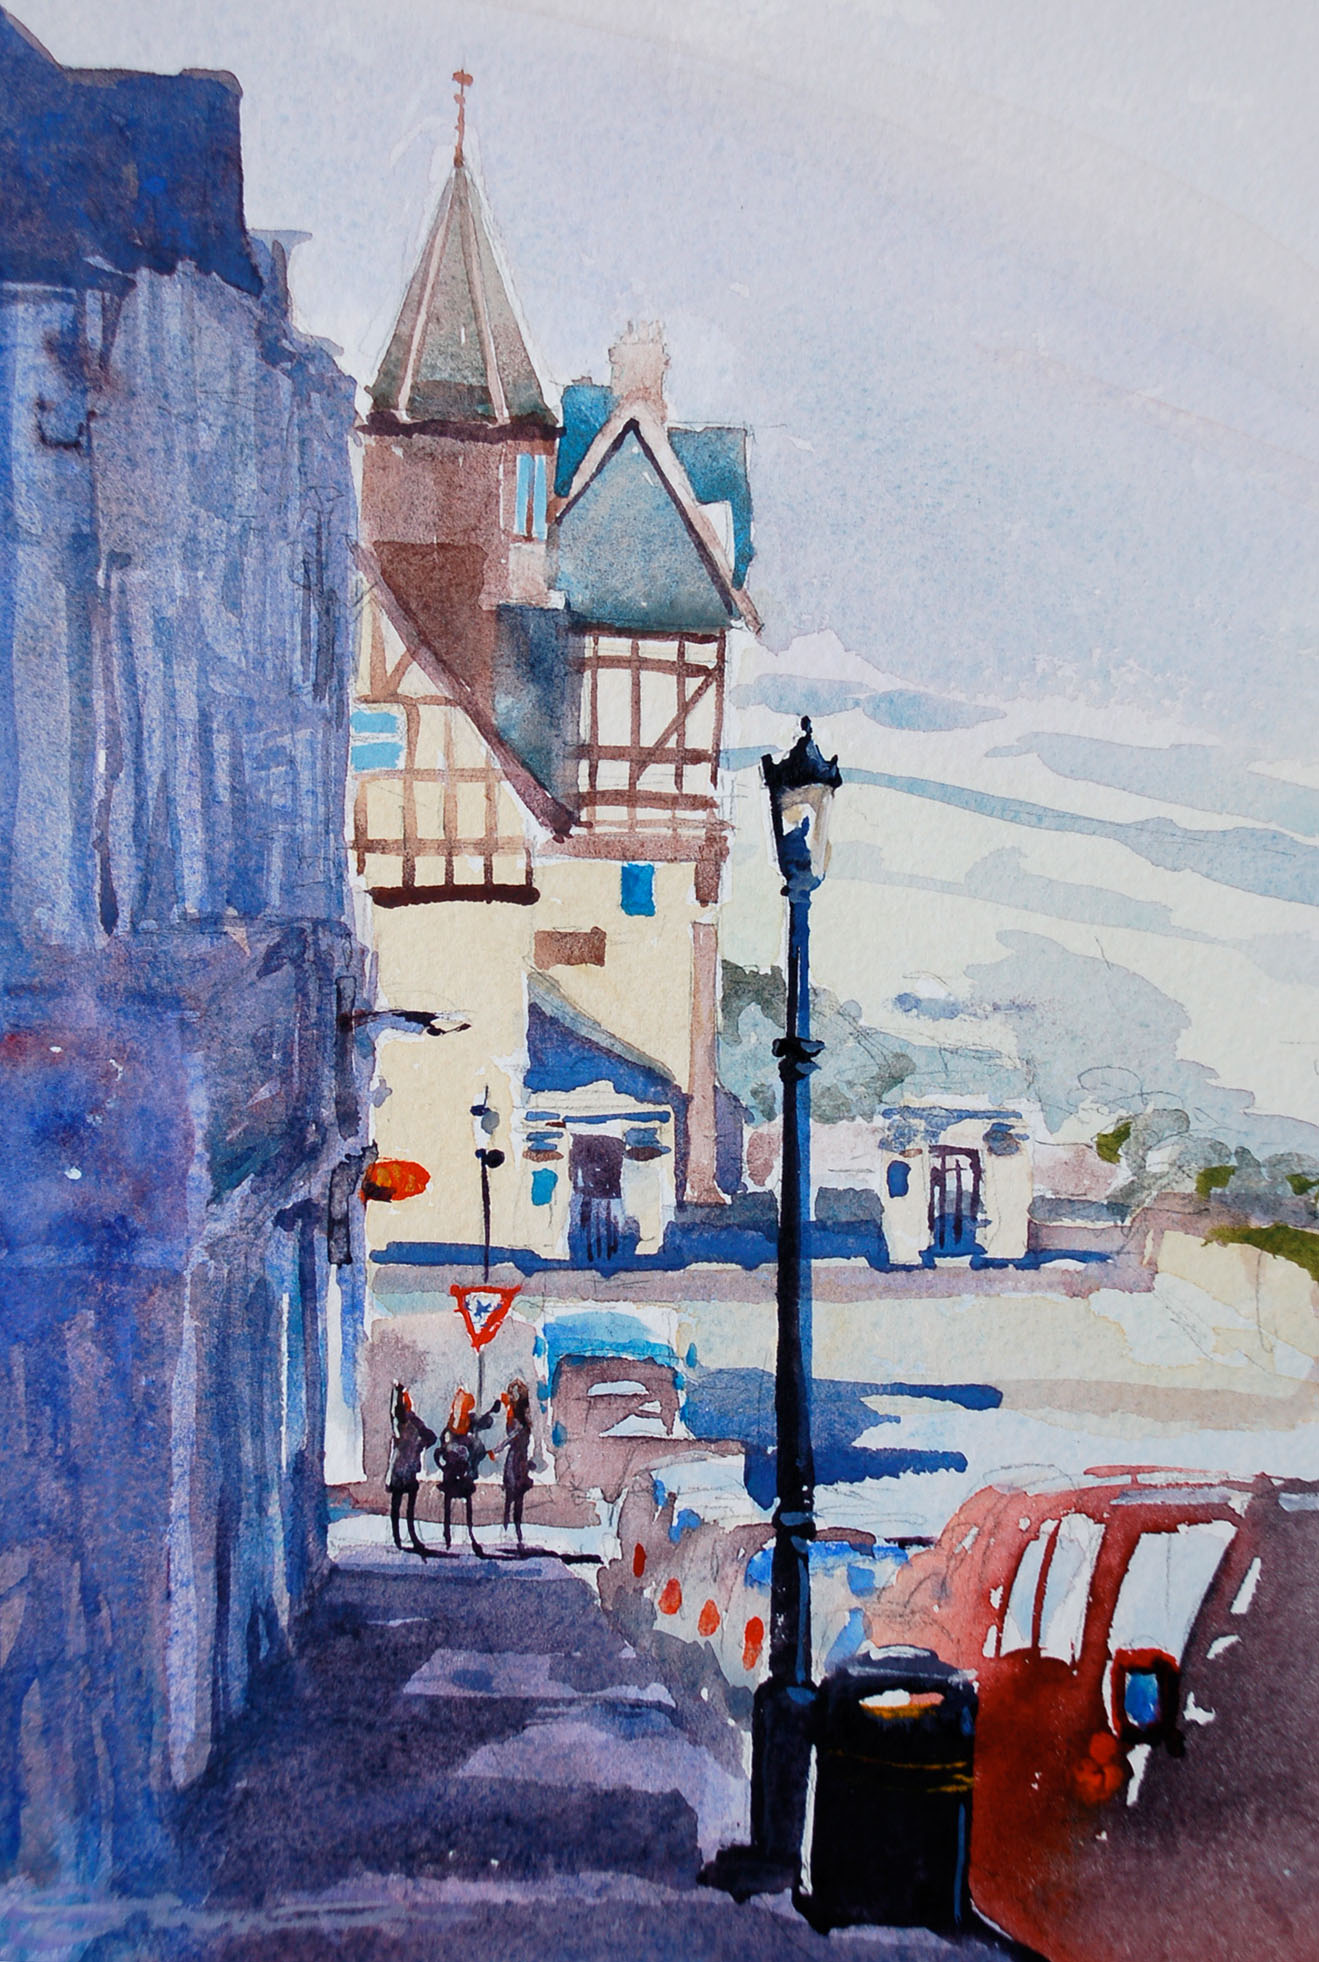 Watercolour painting of Woolacombe Bay Hotel and village by Steve PP.